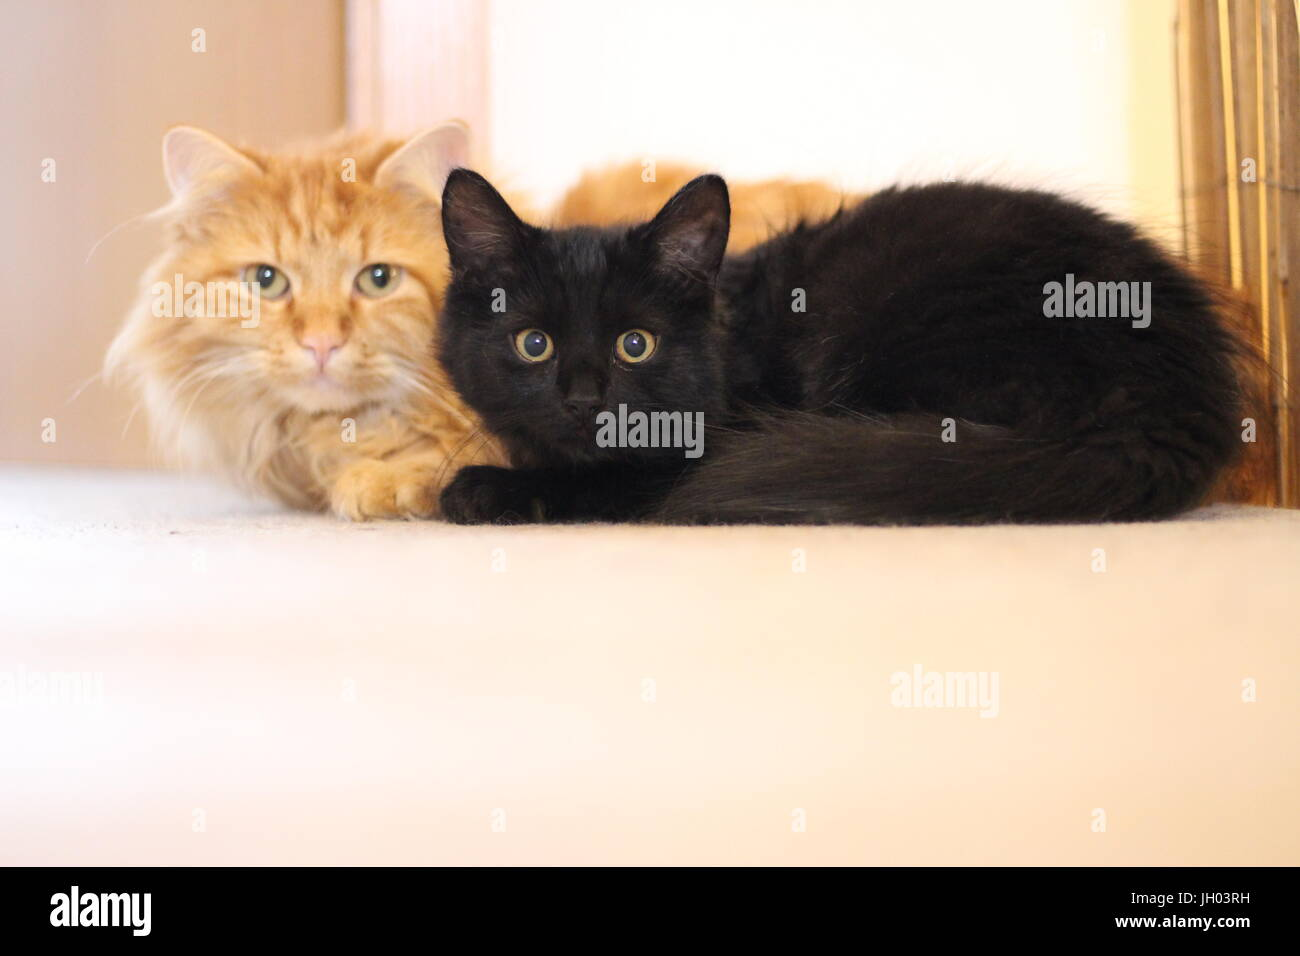 black tomcat stockfotos black tomcat bilder alamy. Black Bedroom Furniture Sets. Home Design Ideas